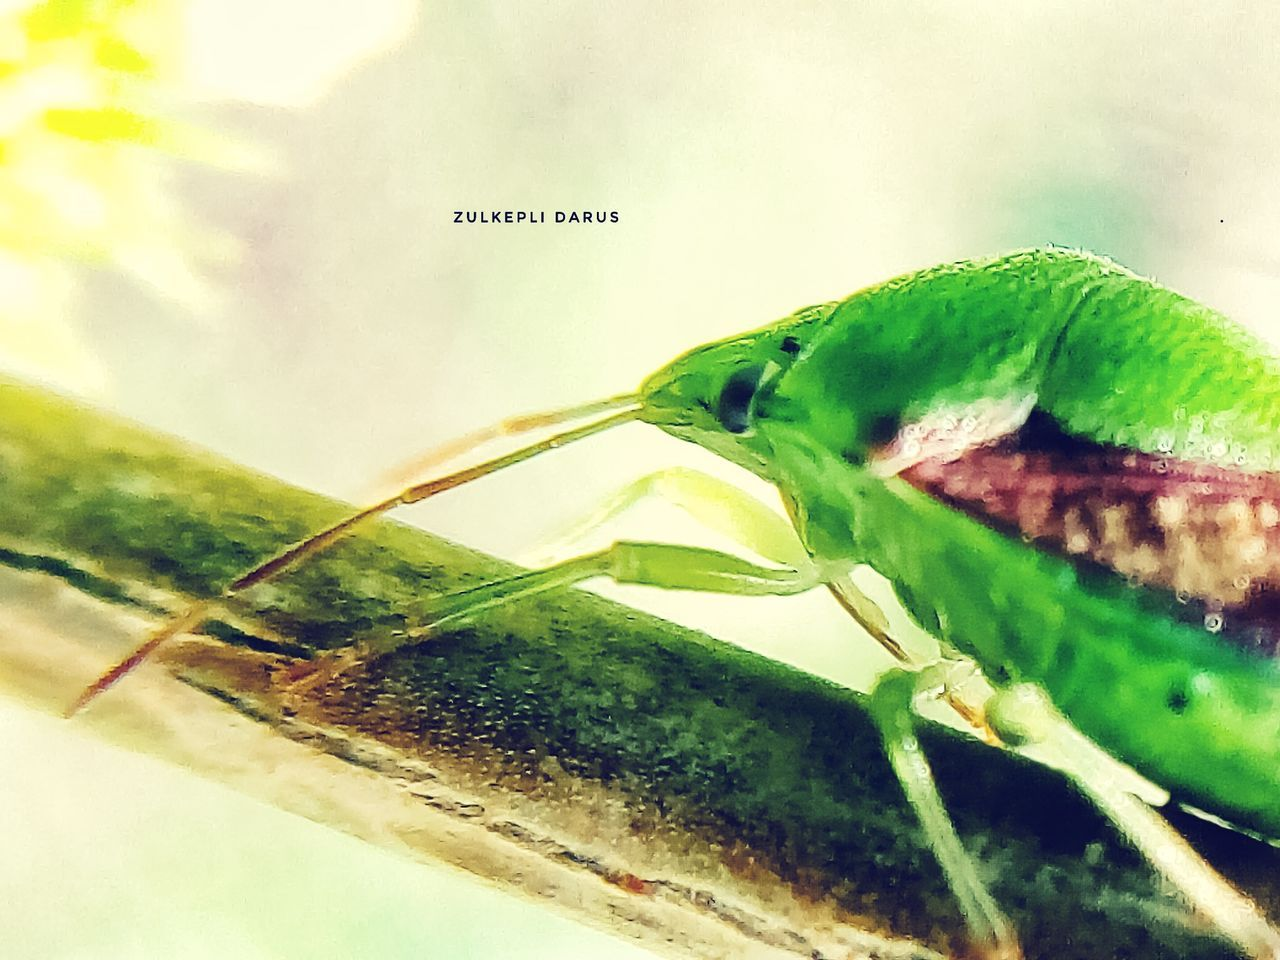 Green Color No People Animals In The Wild Animal Themes Insect One Animal Close Up Day Leaf Animal Wildlife Nature Animals Wild Animal Theme Close Up